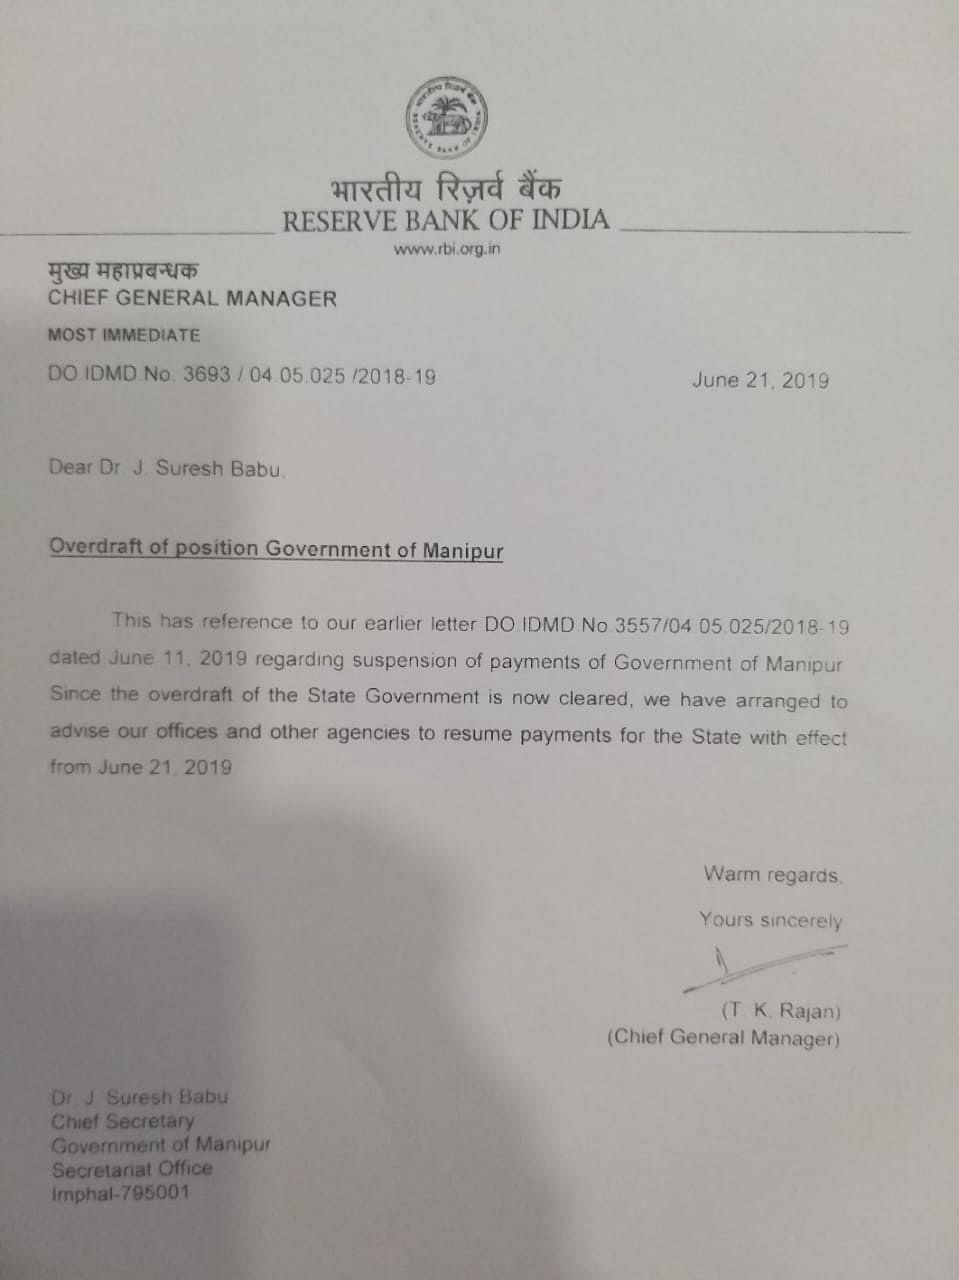 RBI's official circular lifting the ban imposed on financial transactions by the Manipur government